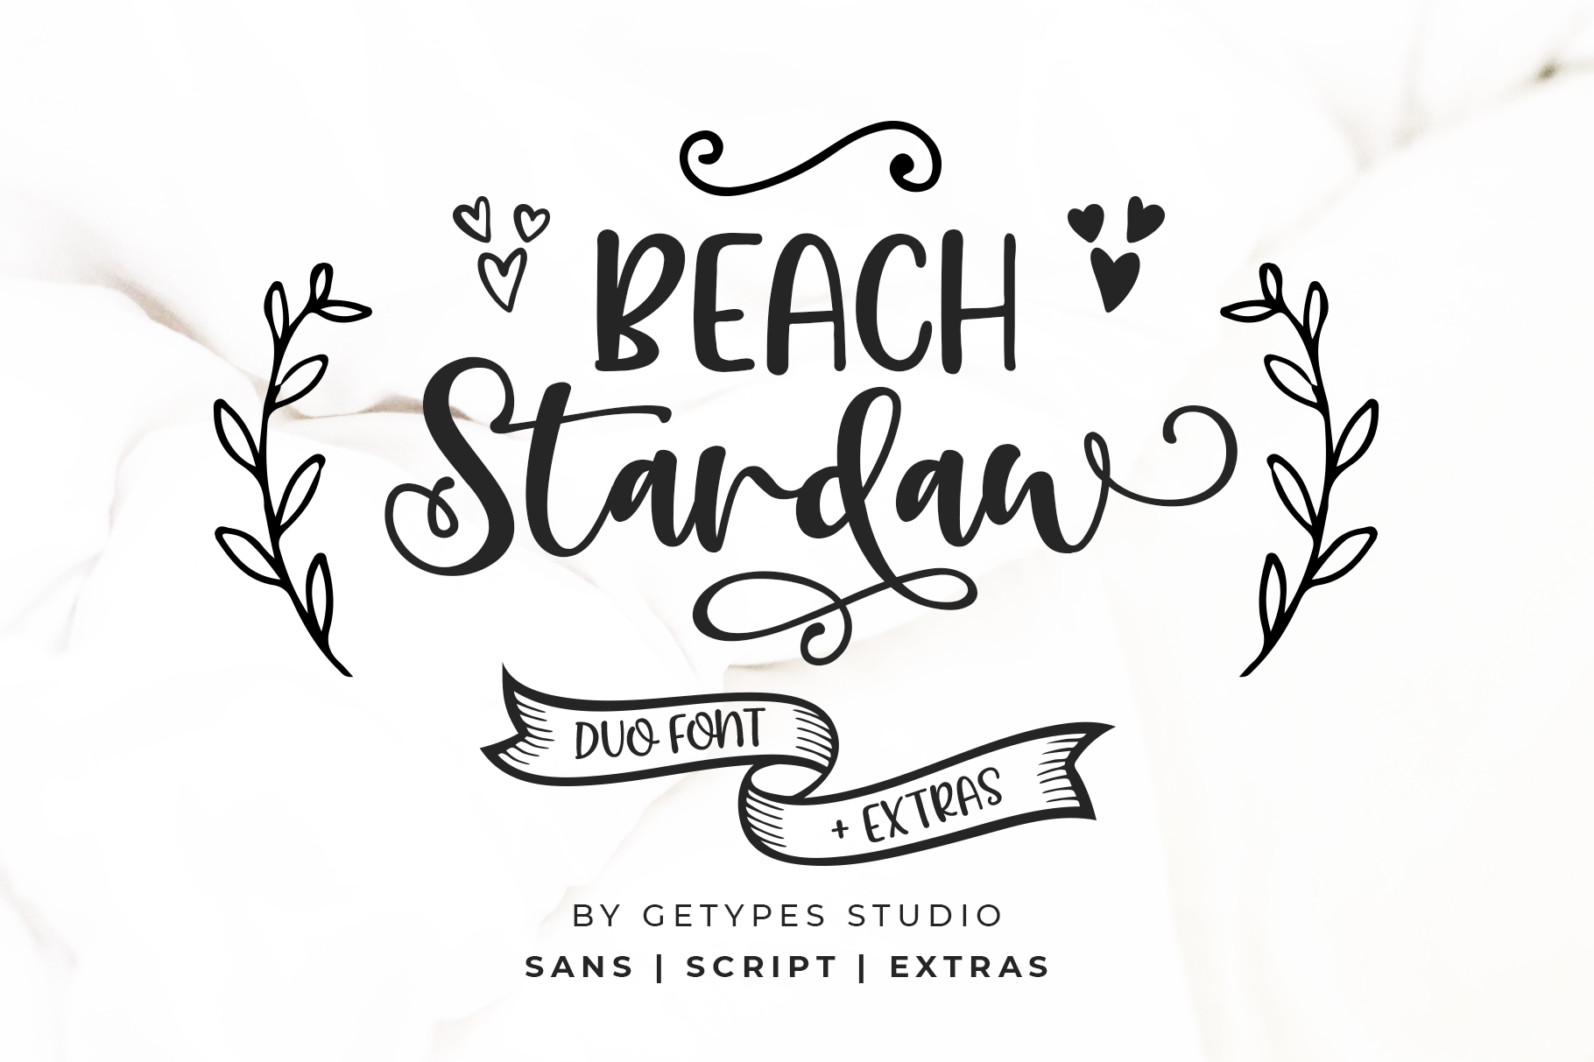 Beach Stardaw - Font Duo With Extras - 01 Preview02 -